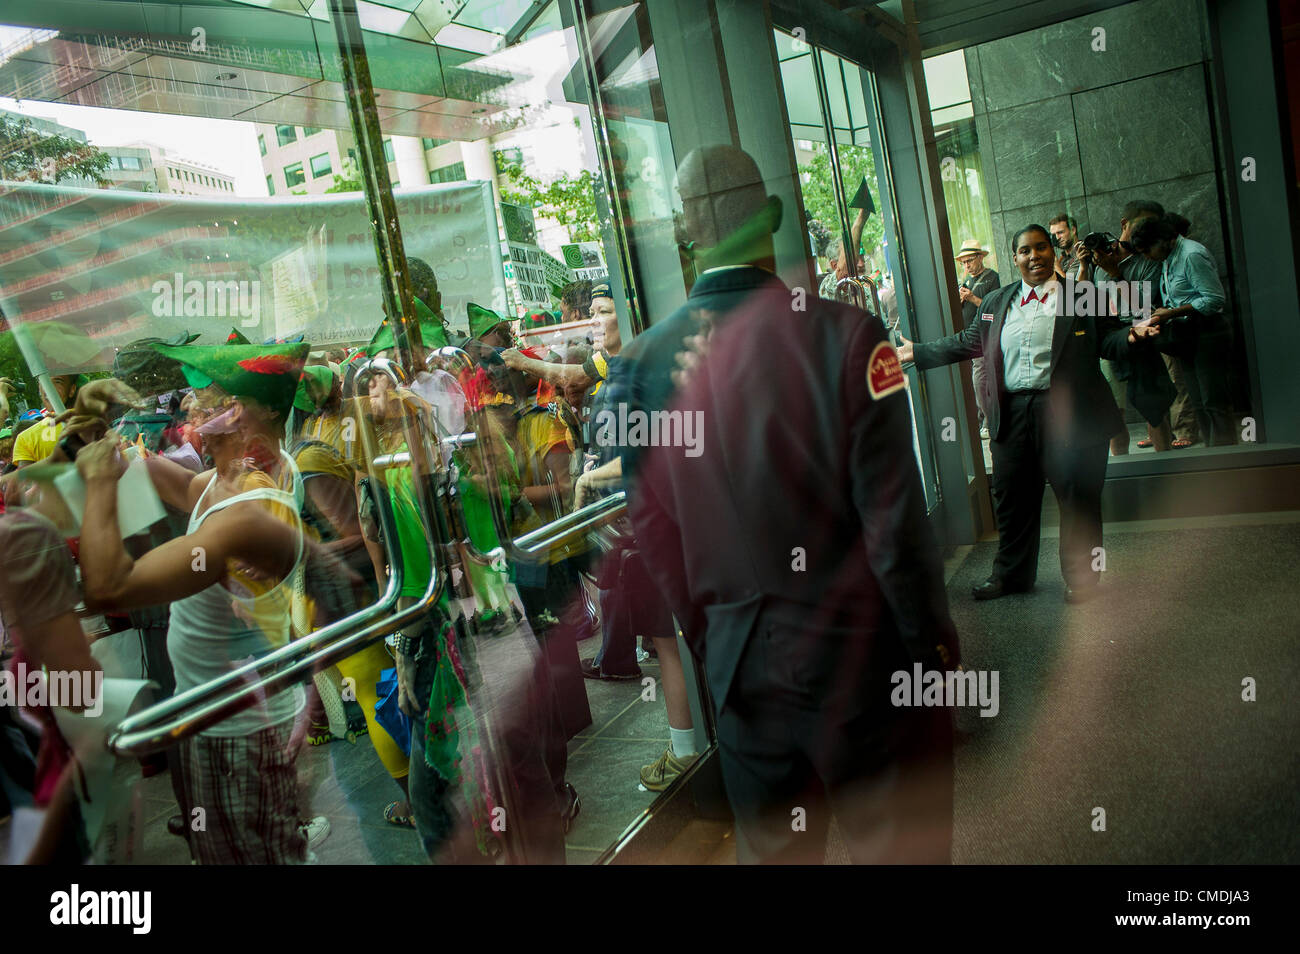 July 24, 2012 - U.S. - Security guards look on and guards the door at an office building that activists stopped - Stock Image